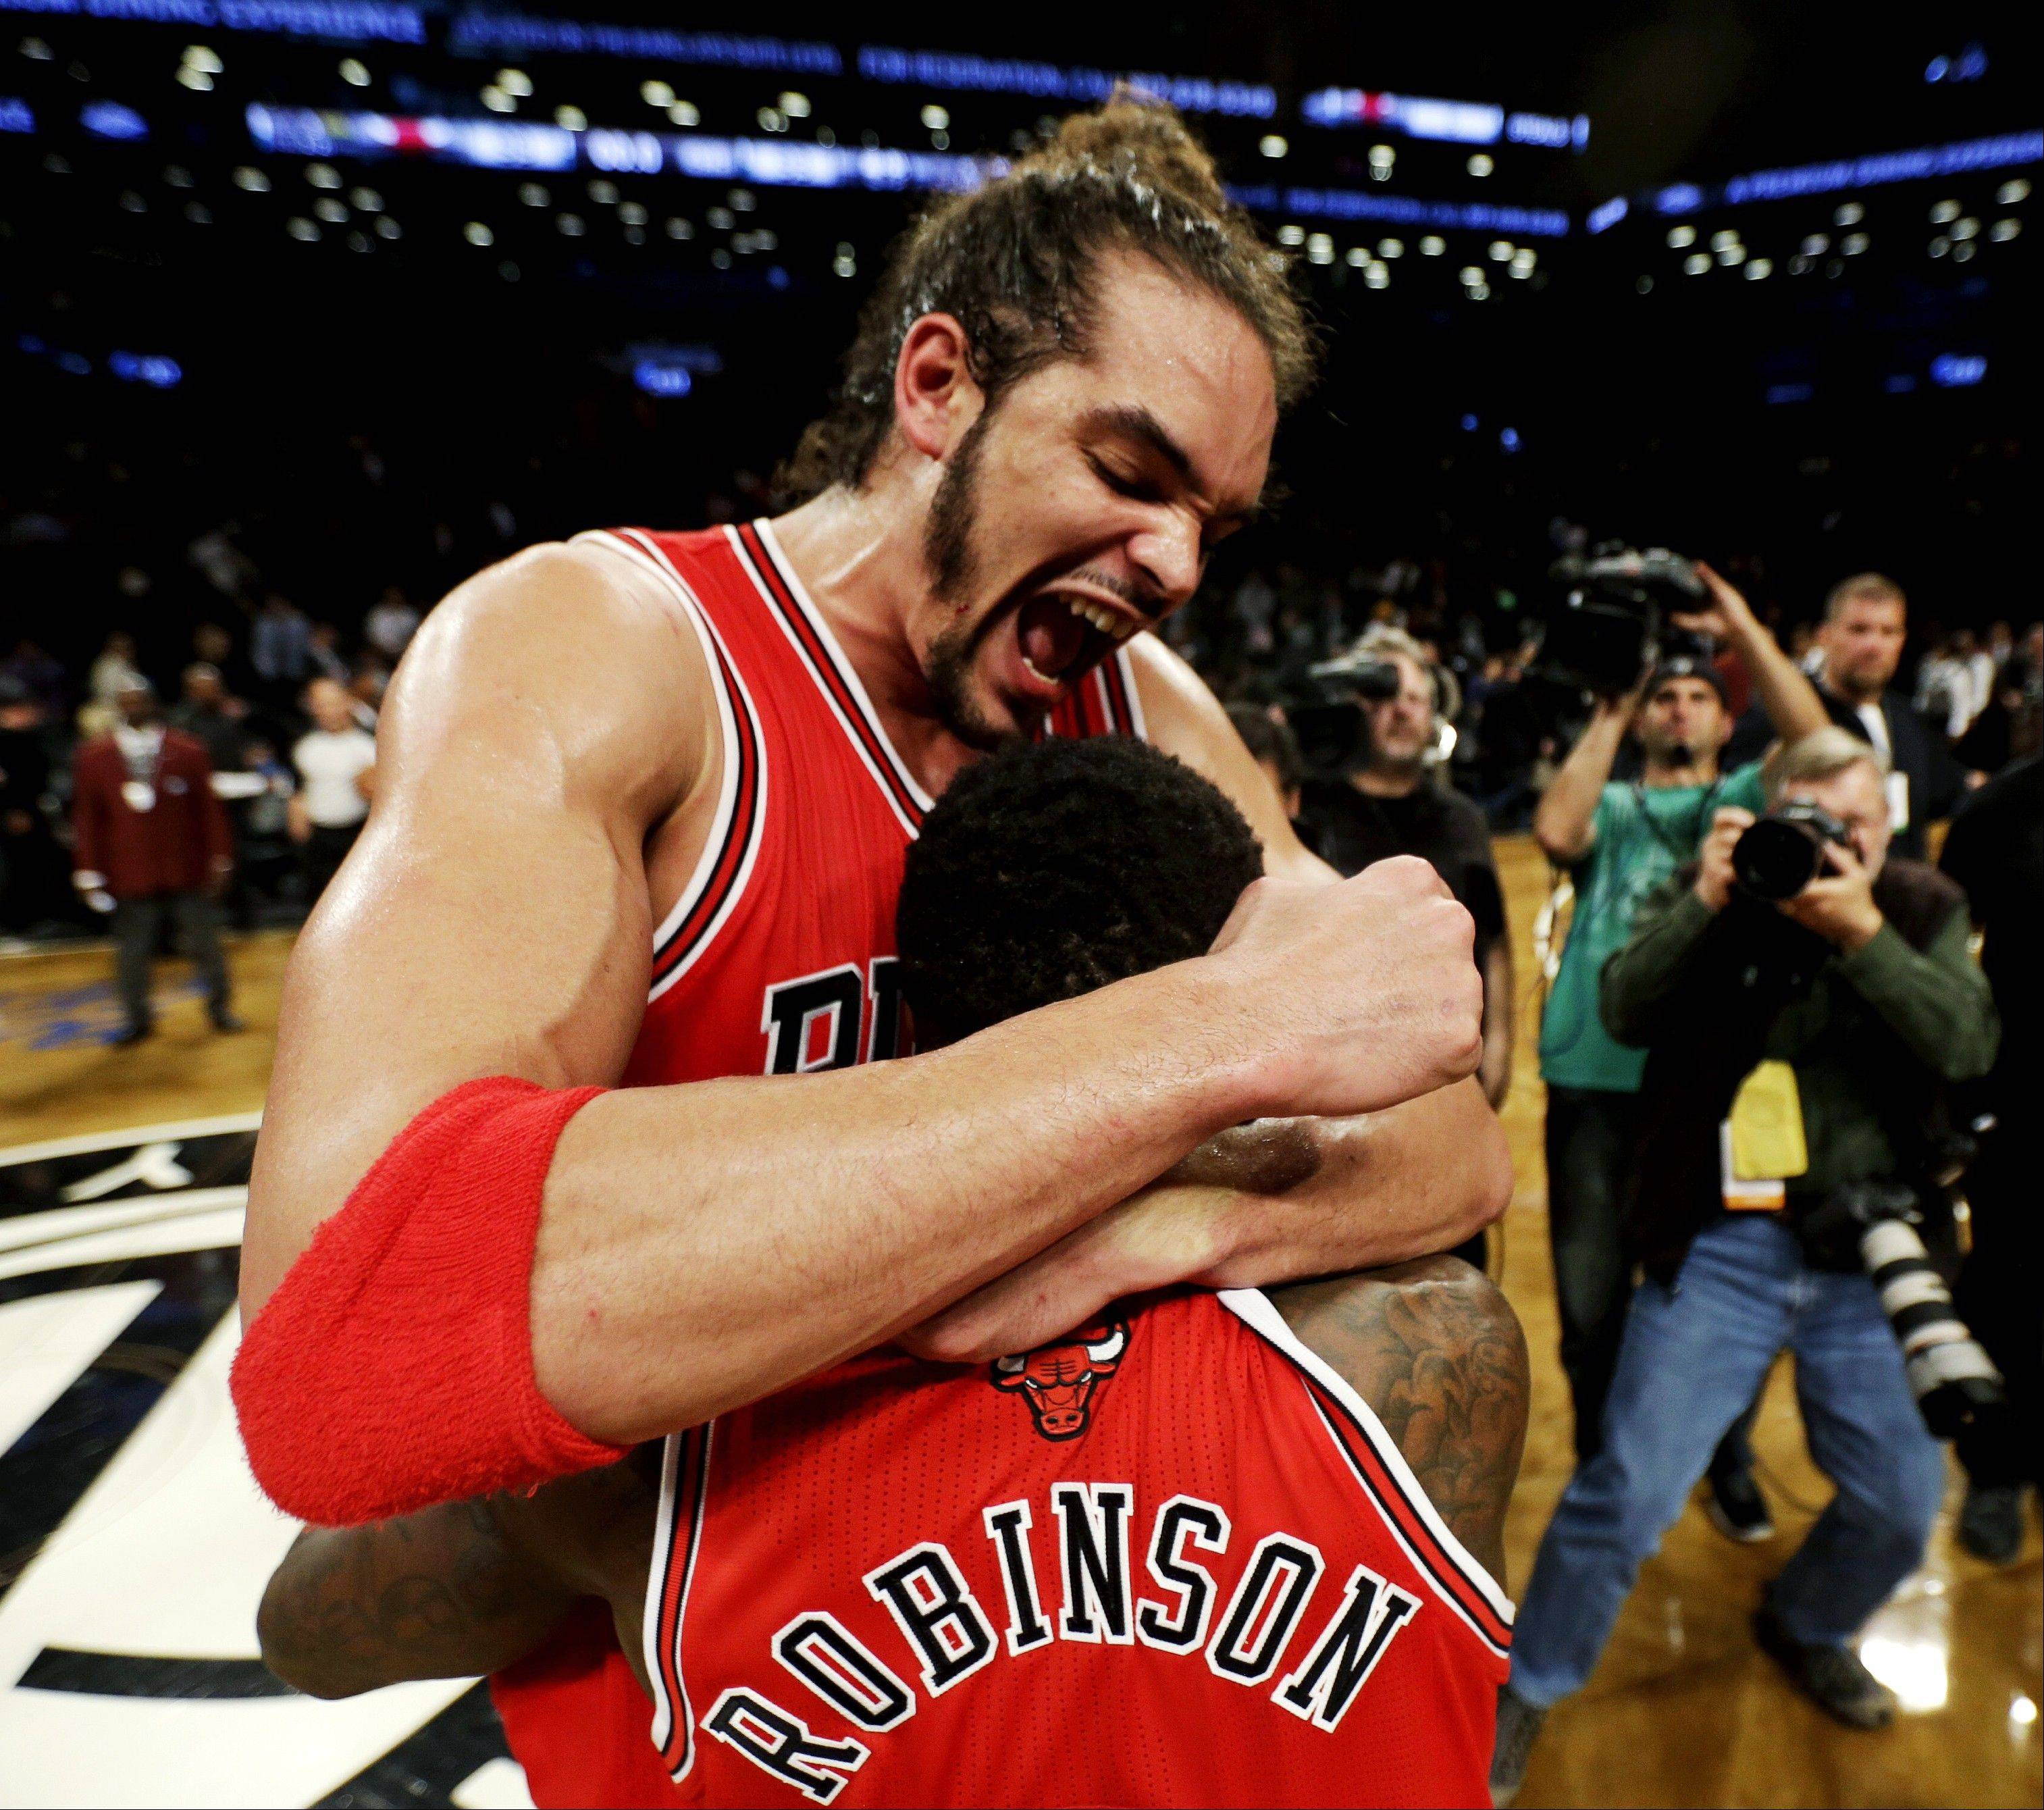 Chicago Bulls' Joakim Noah, top, celebrates with teammate Nate Robinson after defeating the Brooklyn Nets 99-93 in Game 7 of their first-round NBA basketball playoff series in New York, Saturday, May 4, 2013. The Bulls won the series to advance to a second-round series against the Miami Heat beginning Monday. (AP Photo/Julio Cortez)